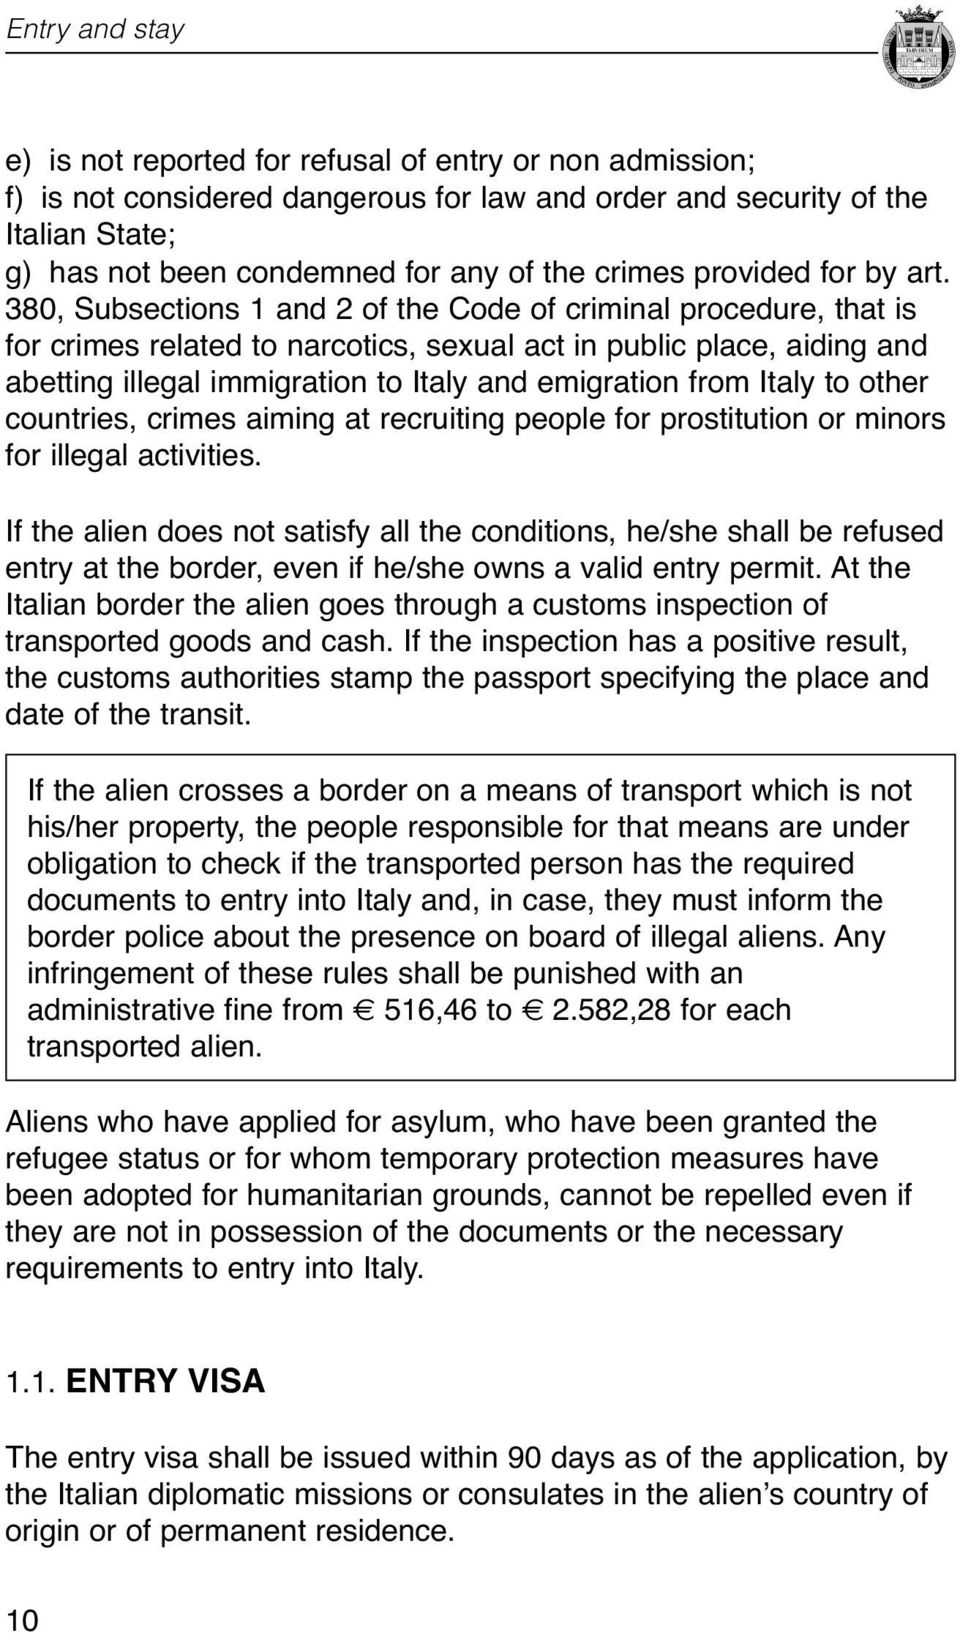 Italy and emigration from Italy to other countries, crimes aiming at recruiting people for prostitution or minors for illegal activities If the alien does not satisfy all the conditions, he/she shall